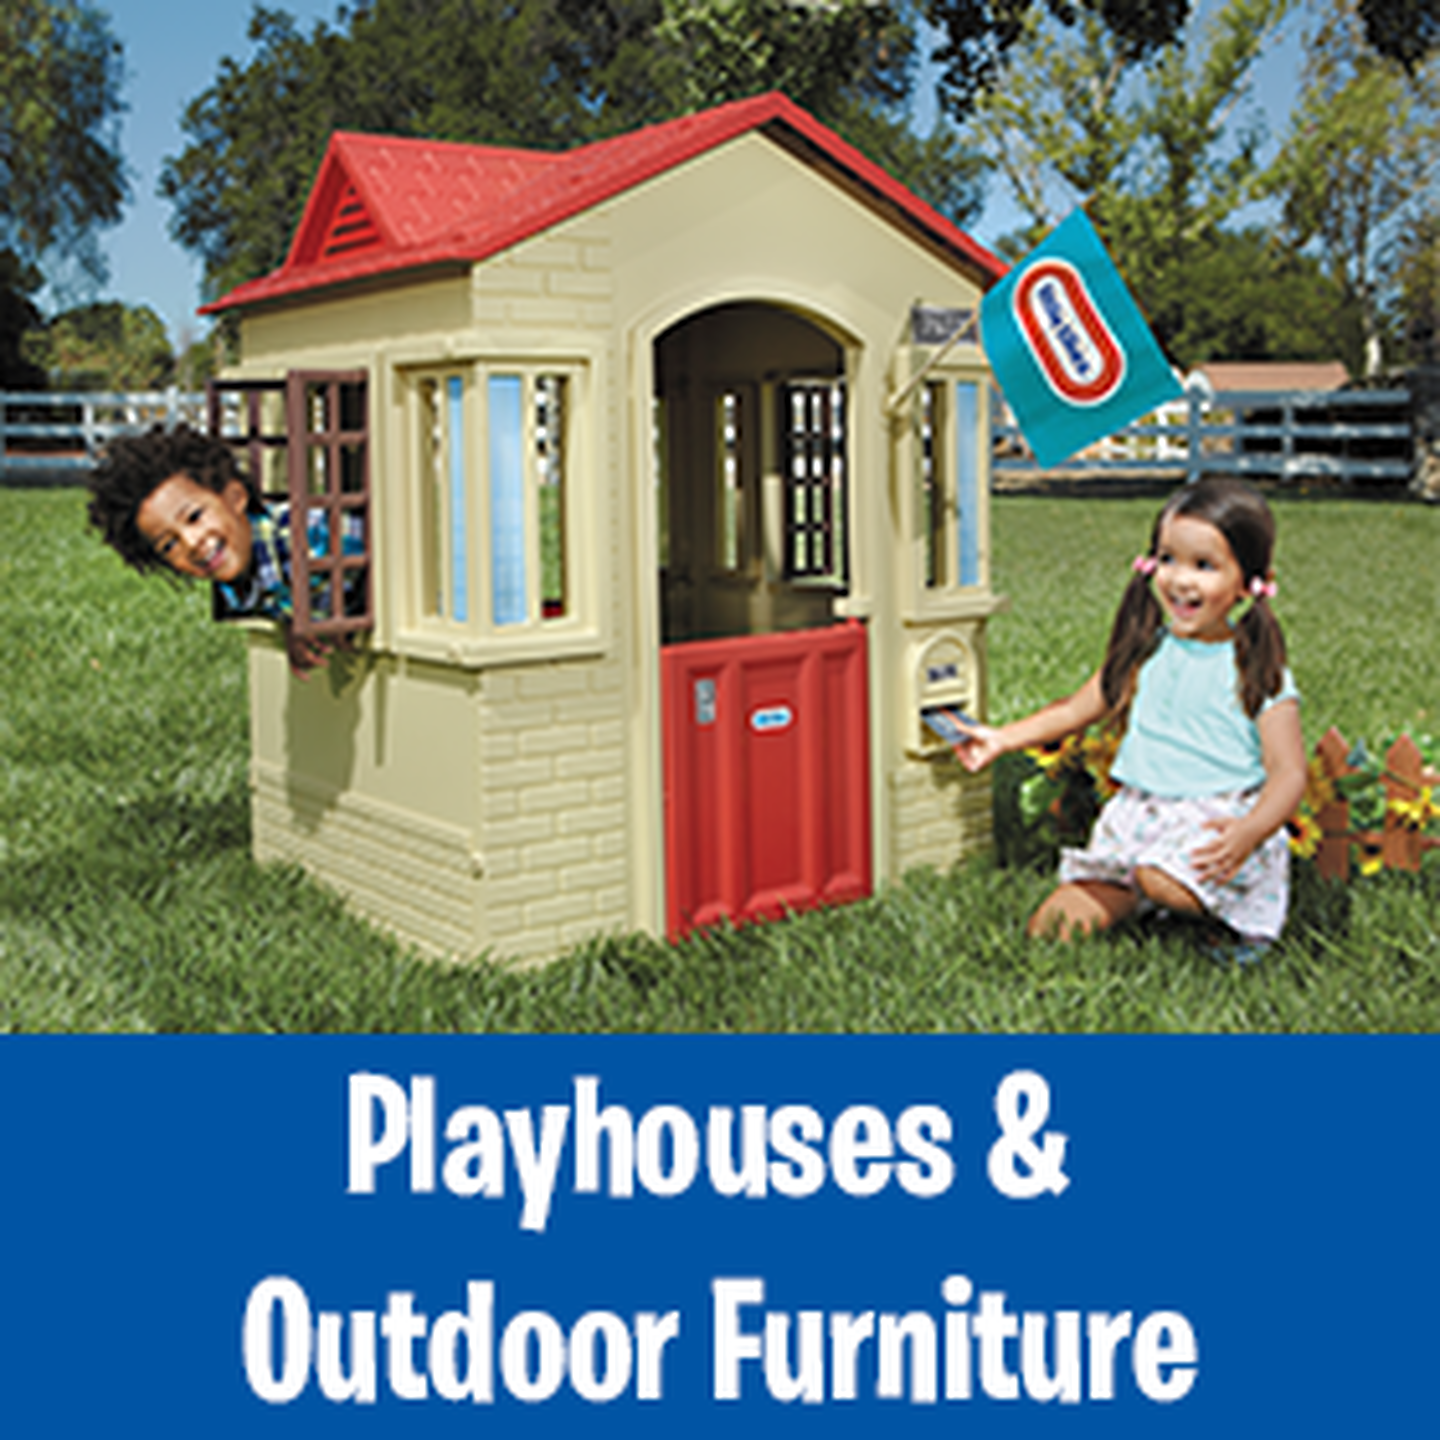 Playhouses & Outdoor Furniture